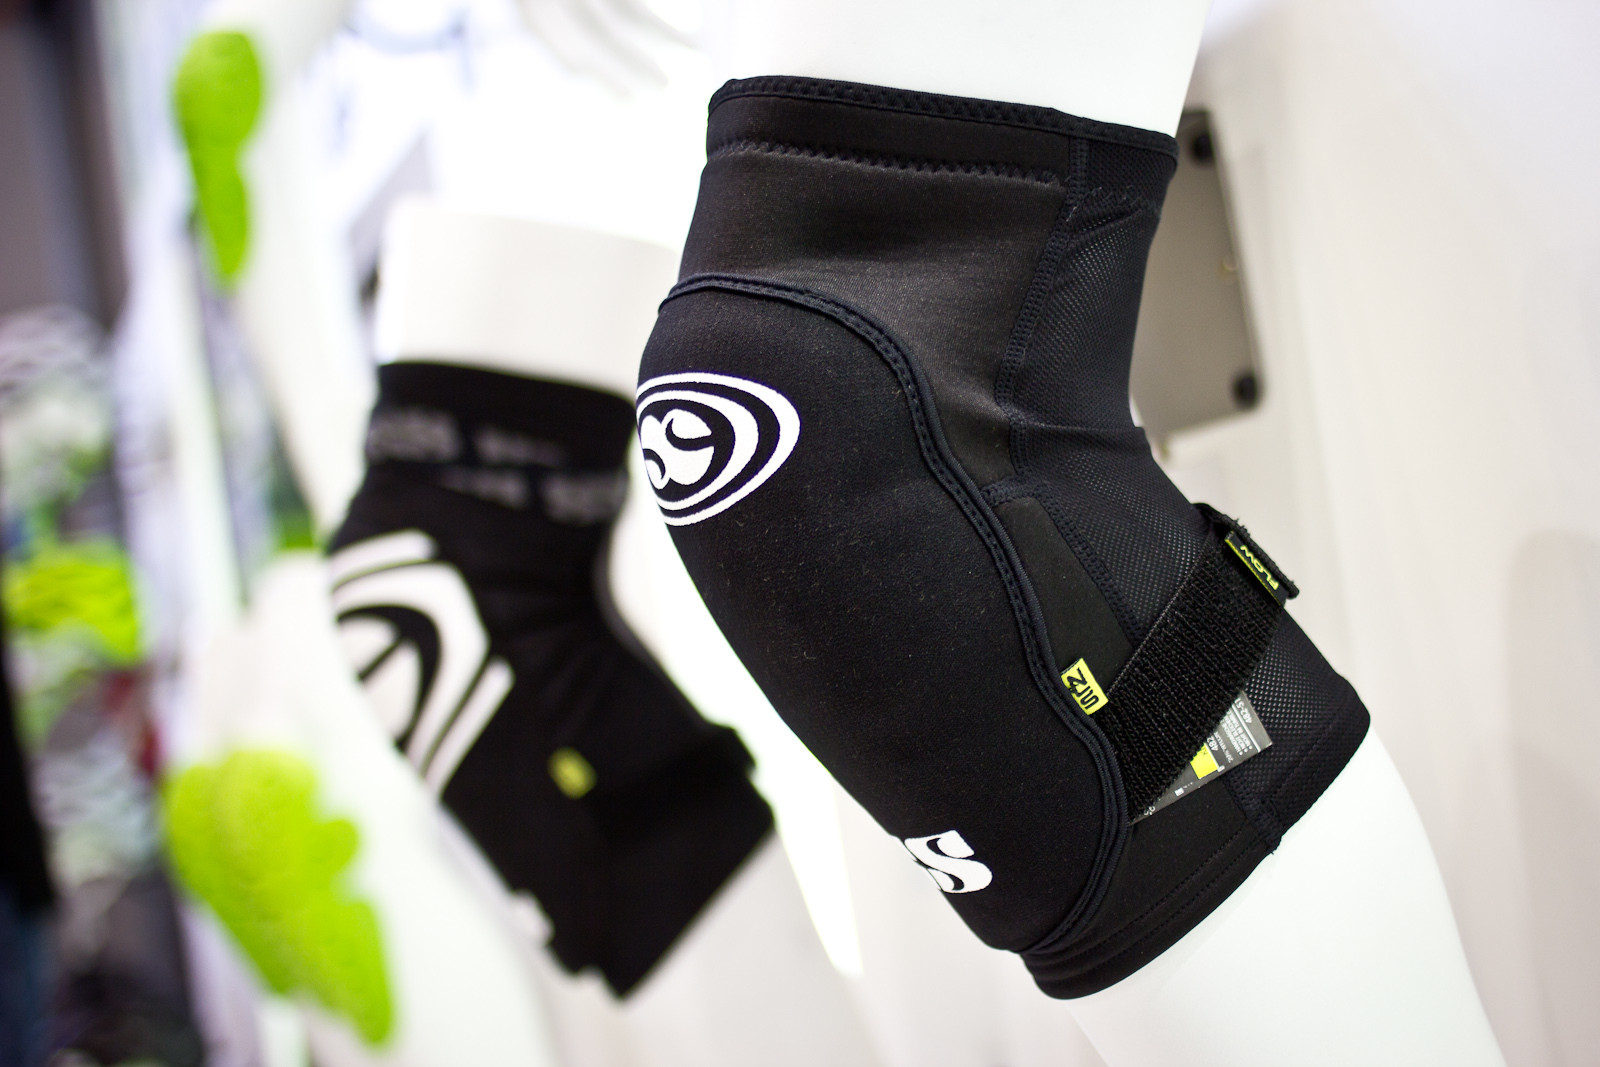 iXS Flow Series Knee Pads - 2014 Mountain Bike Apparel & Protection at Eurobike 2013 - Mountain Biking Pictures - Vital MTB